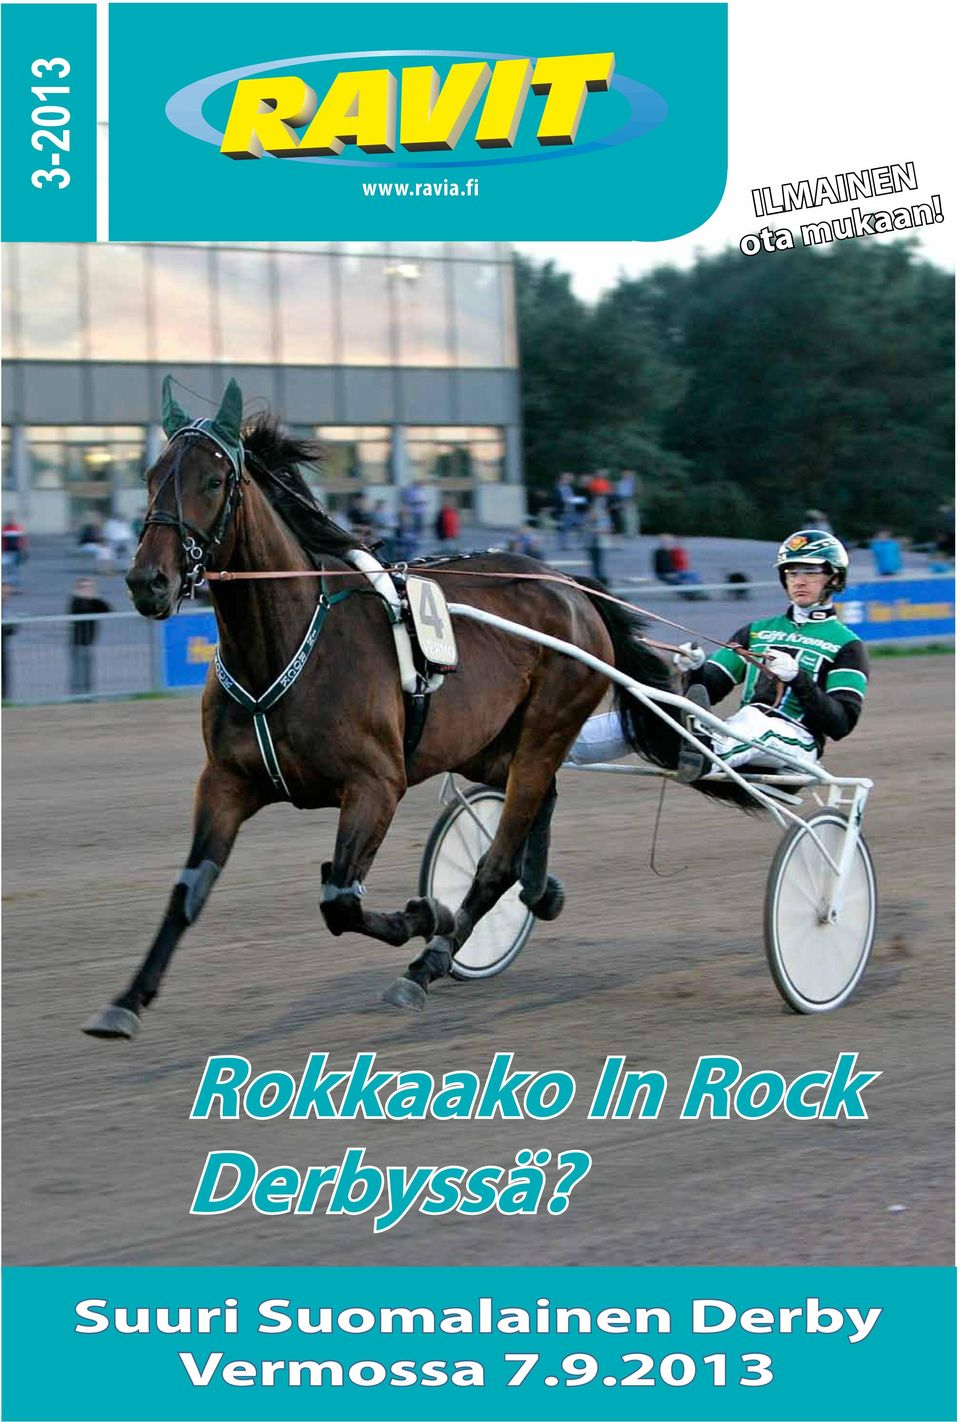 Rokkaako In Rock Derbyssä?